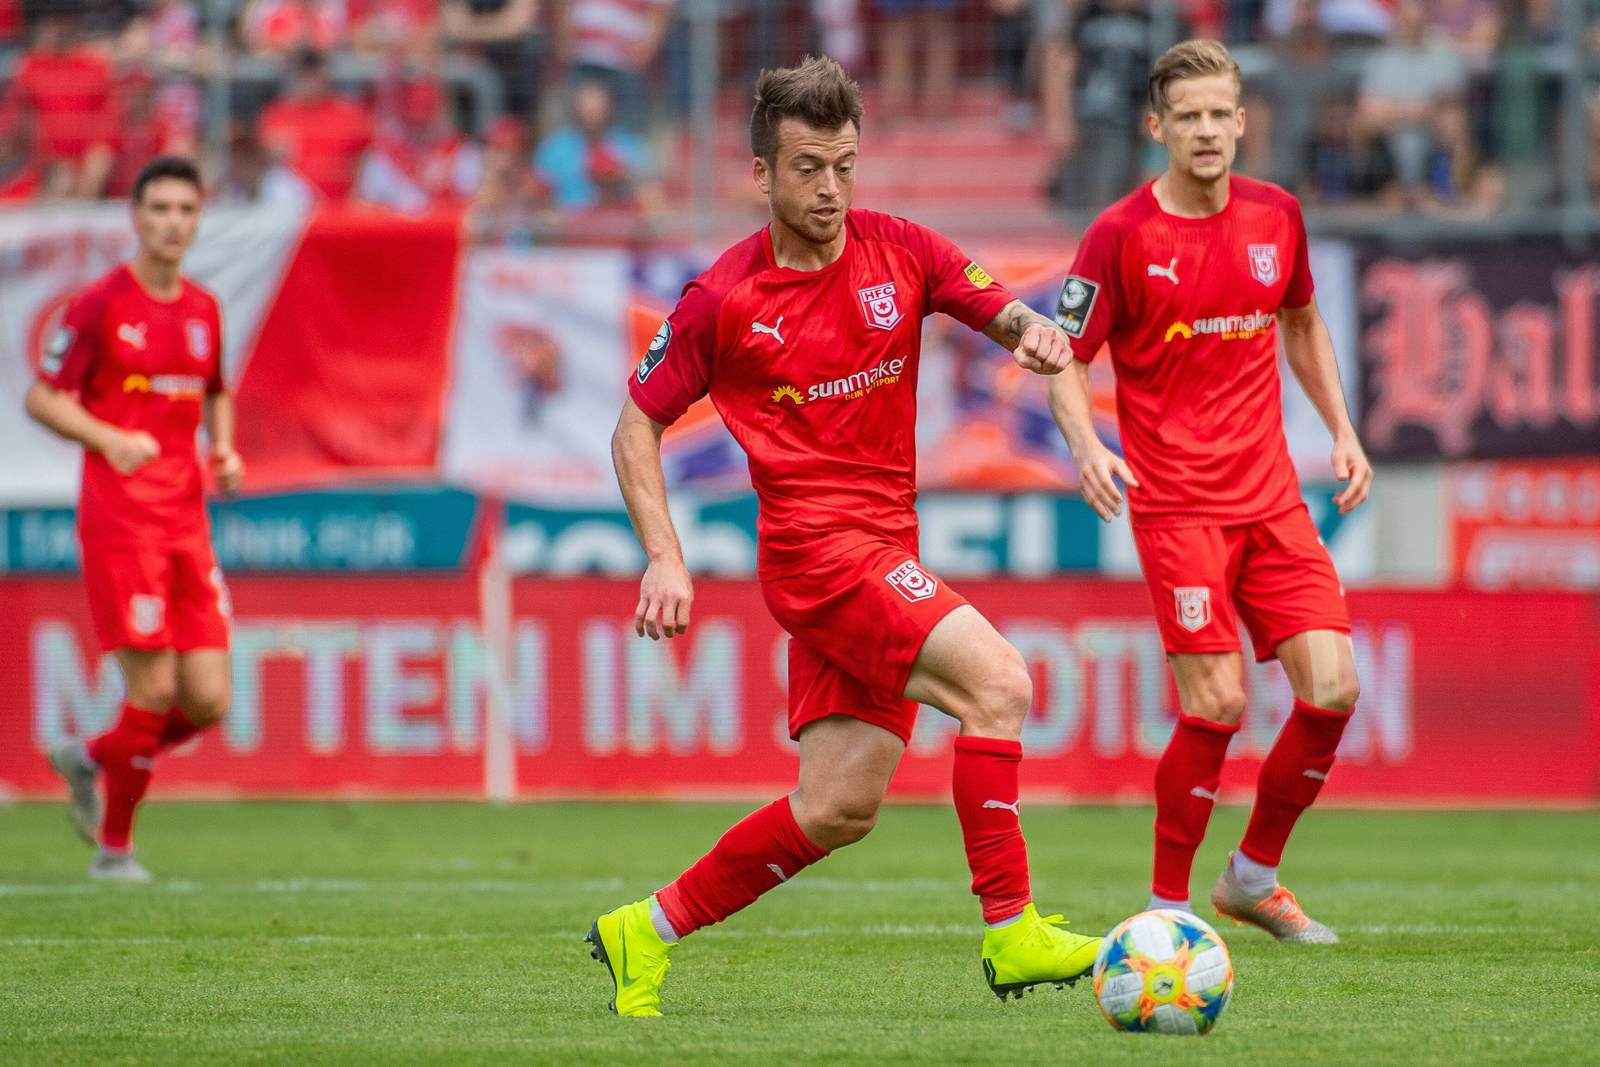 Patrick Göbel im HFC-Dress.